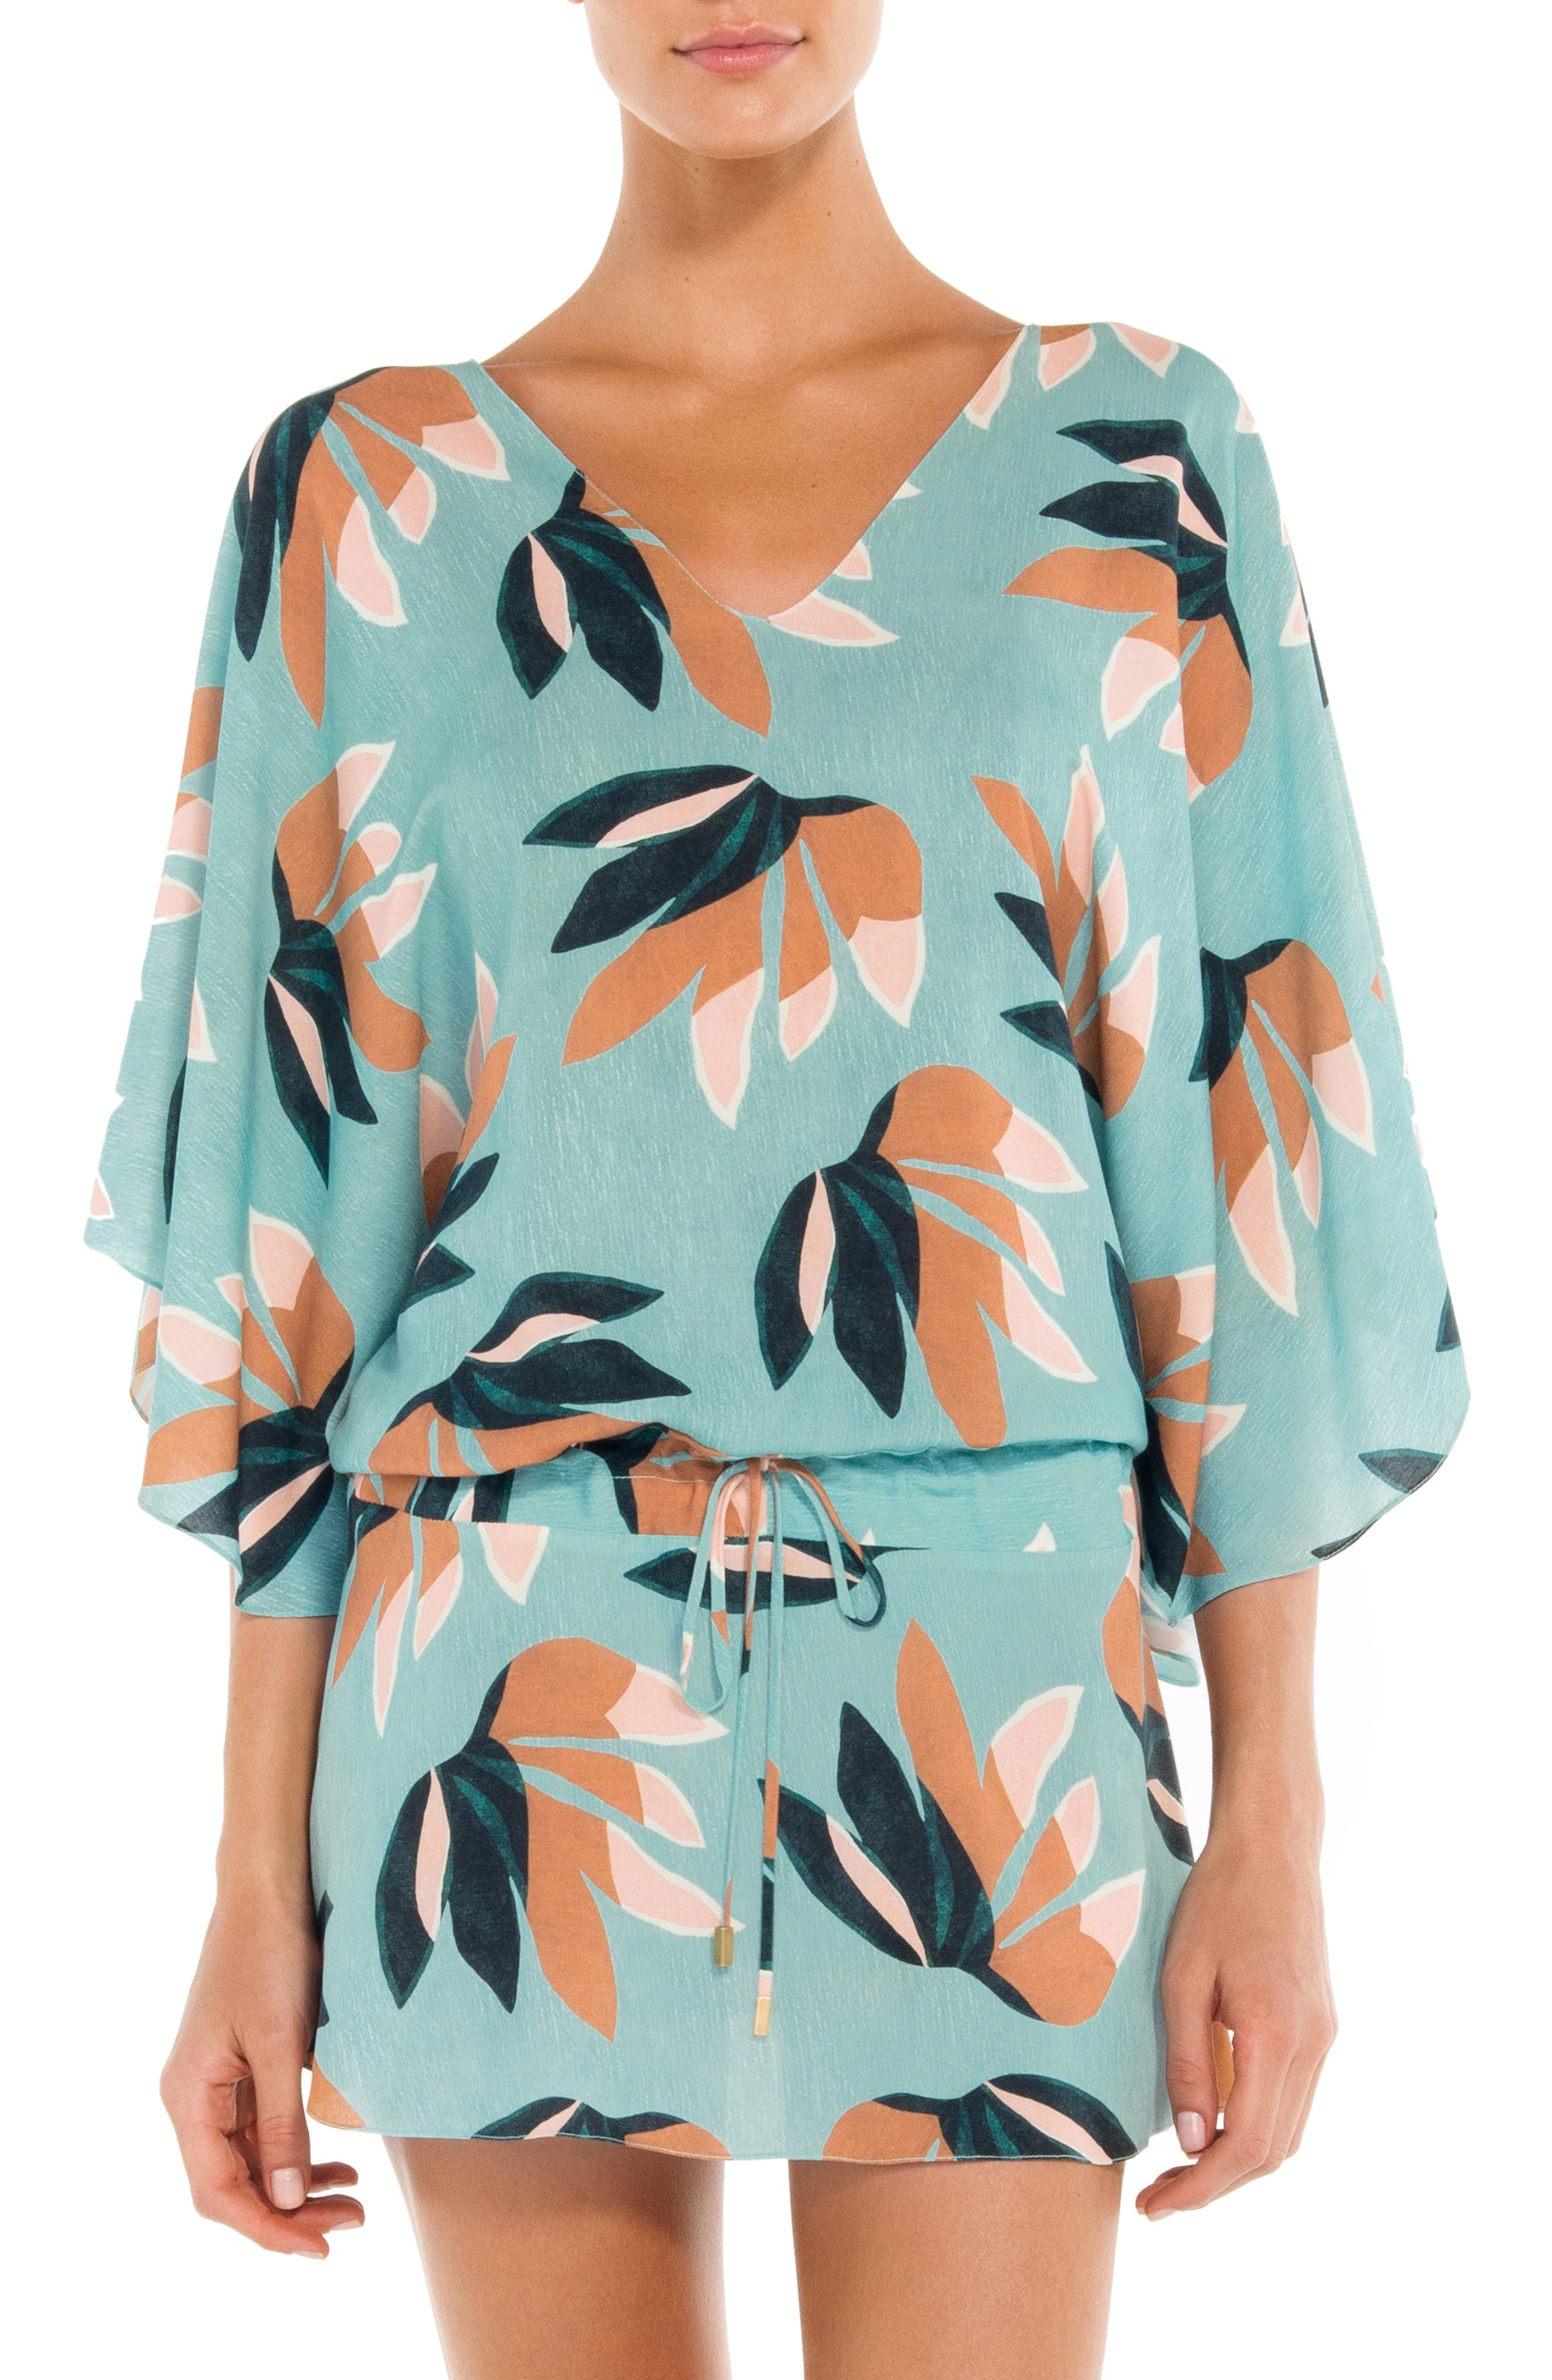 Vix Swimwear Matisse Vintage Cover-Up Tunic, Blue